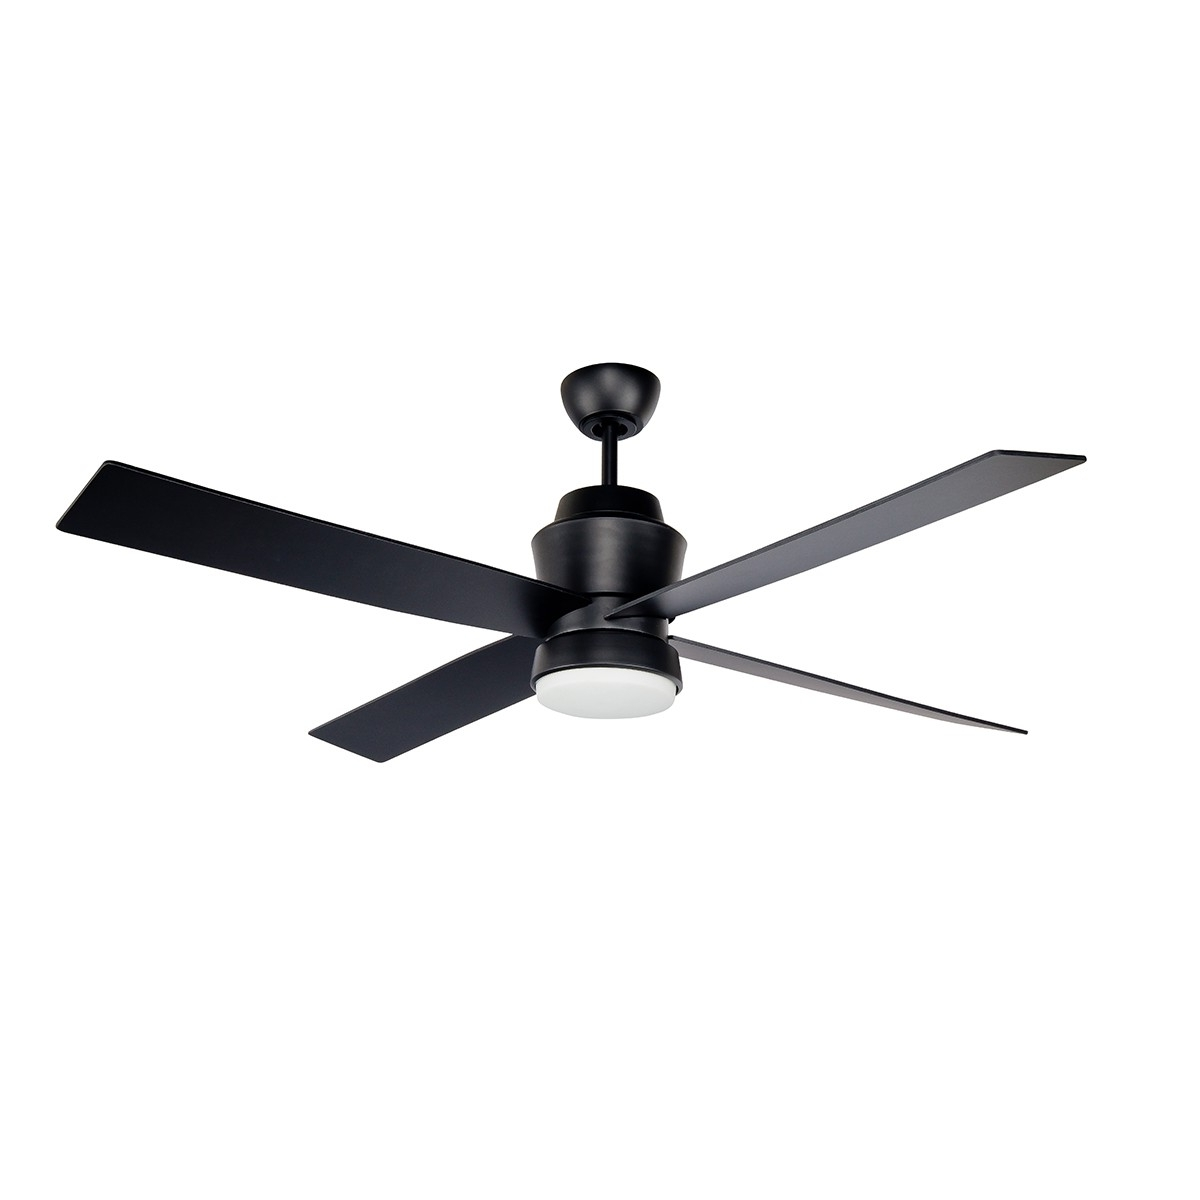 Modern Outdoor Ceiling Fans Regarding Latest Prologue Outdoor Ceiling Fan :: Stori Modern (View 12 of 20)